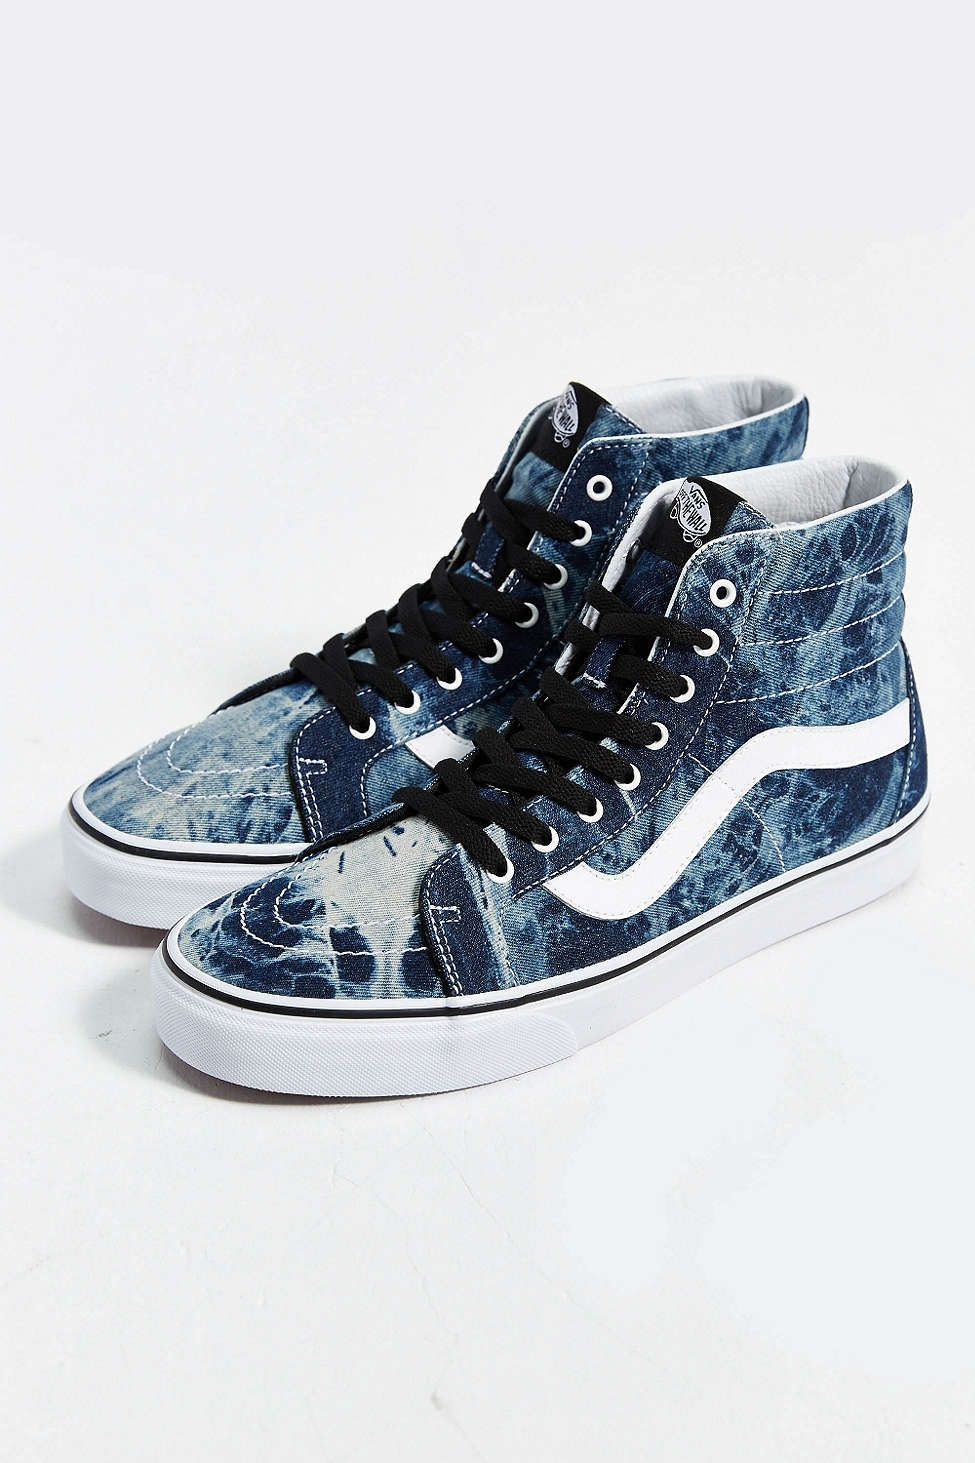 c7e371e63e3 Vans Sk8 High-Top Reissue Acid Wash Men s Sneaker